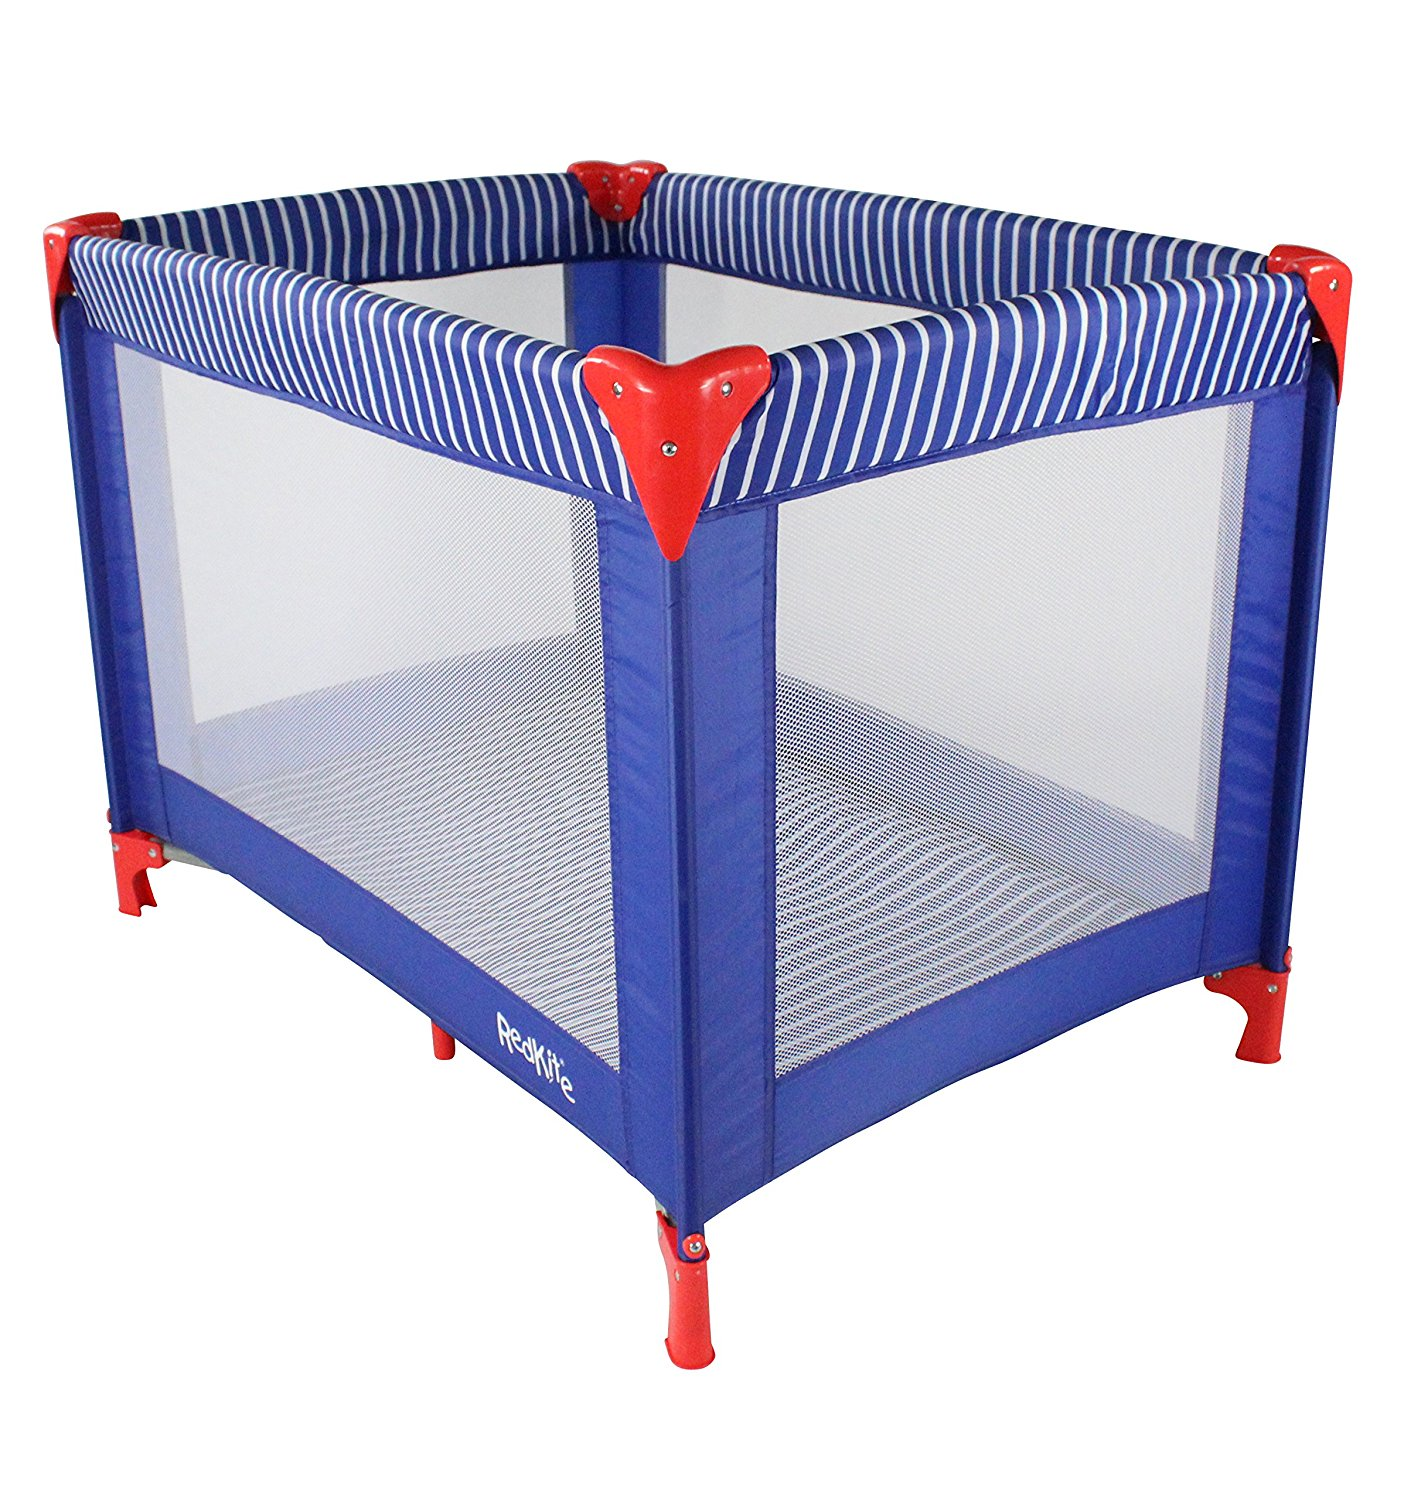 new red kite baby sleeptight folding travel cot ships. Black Bedroom Furniture Sets. Home Design Ideas